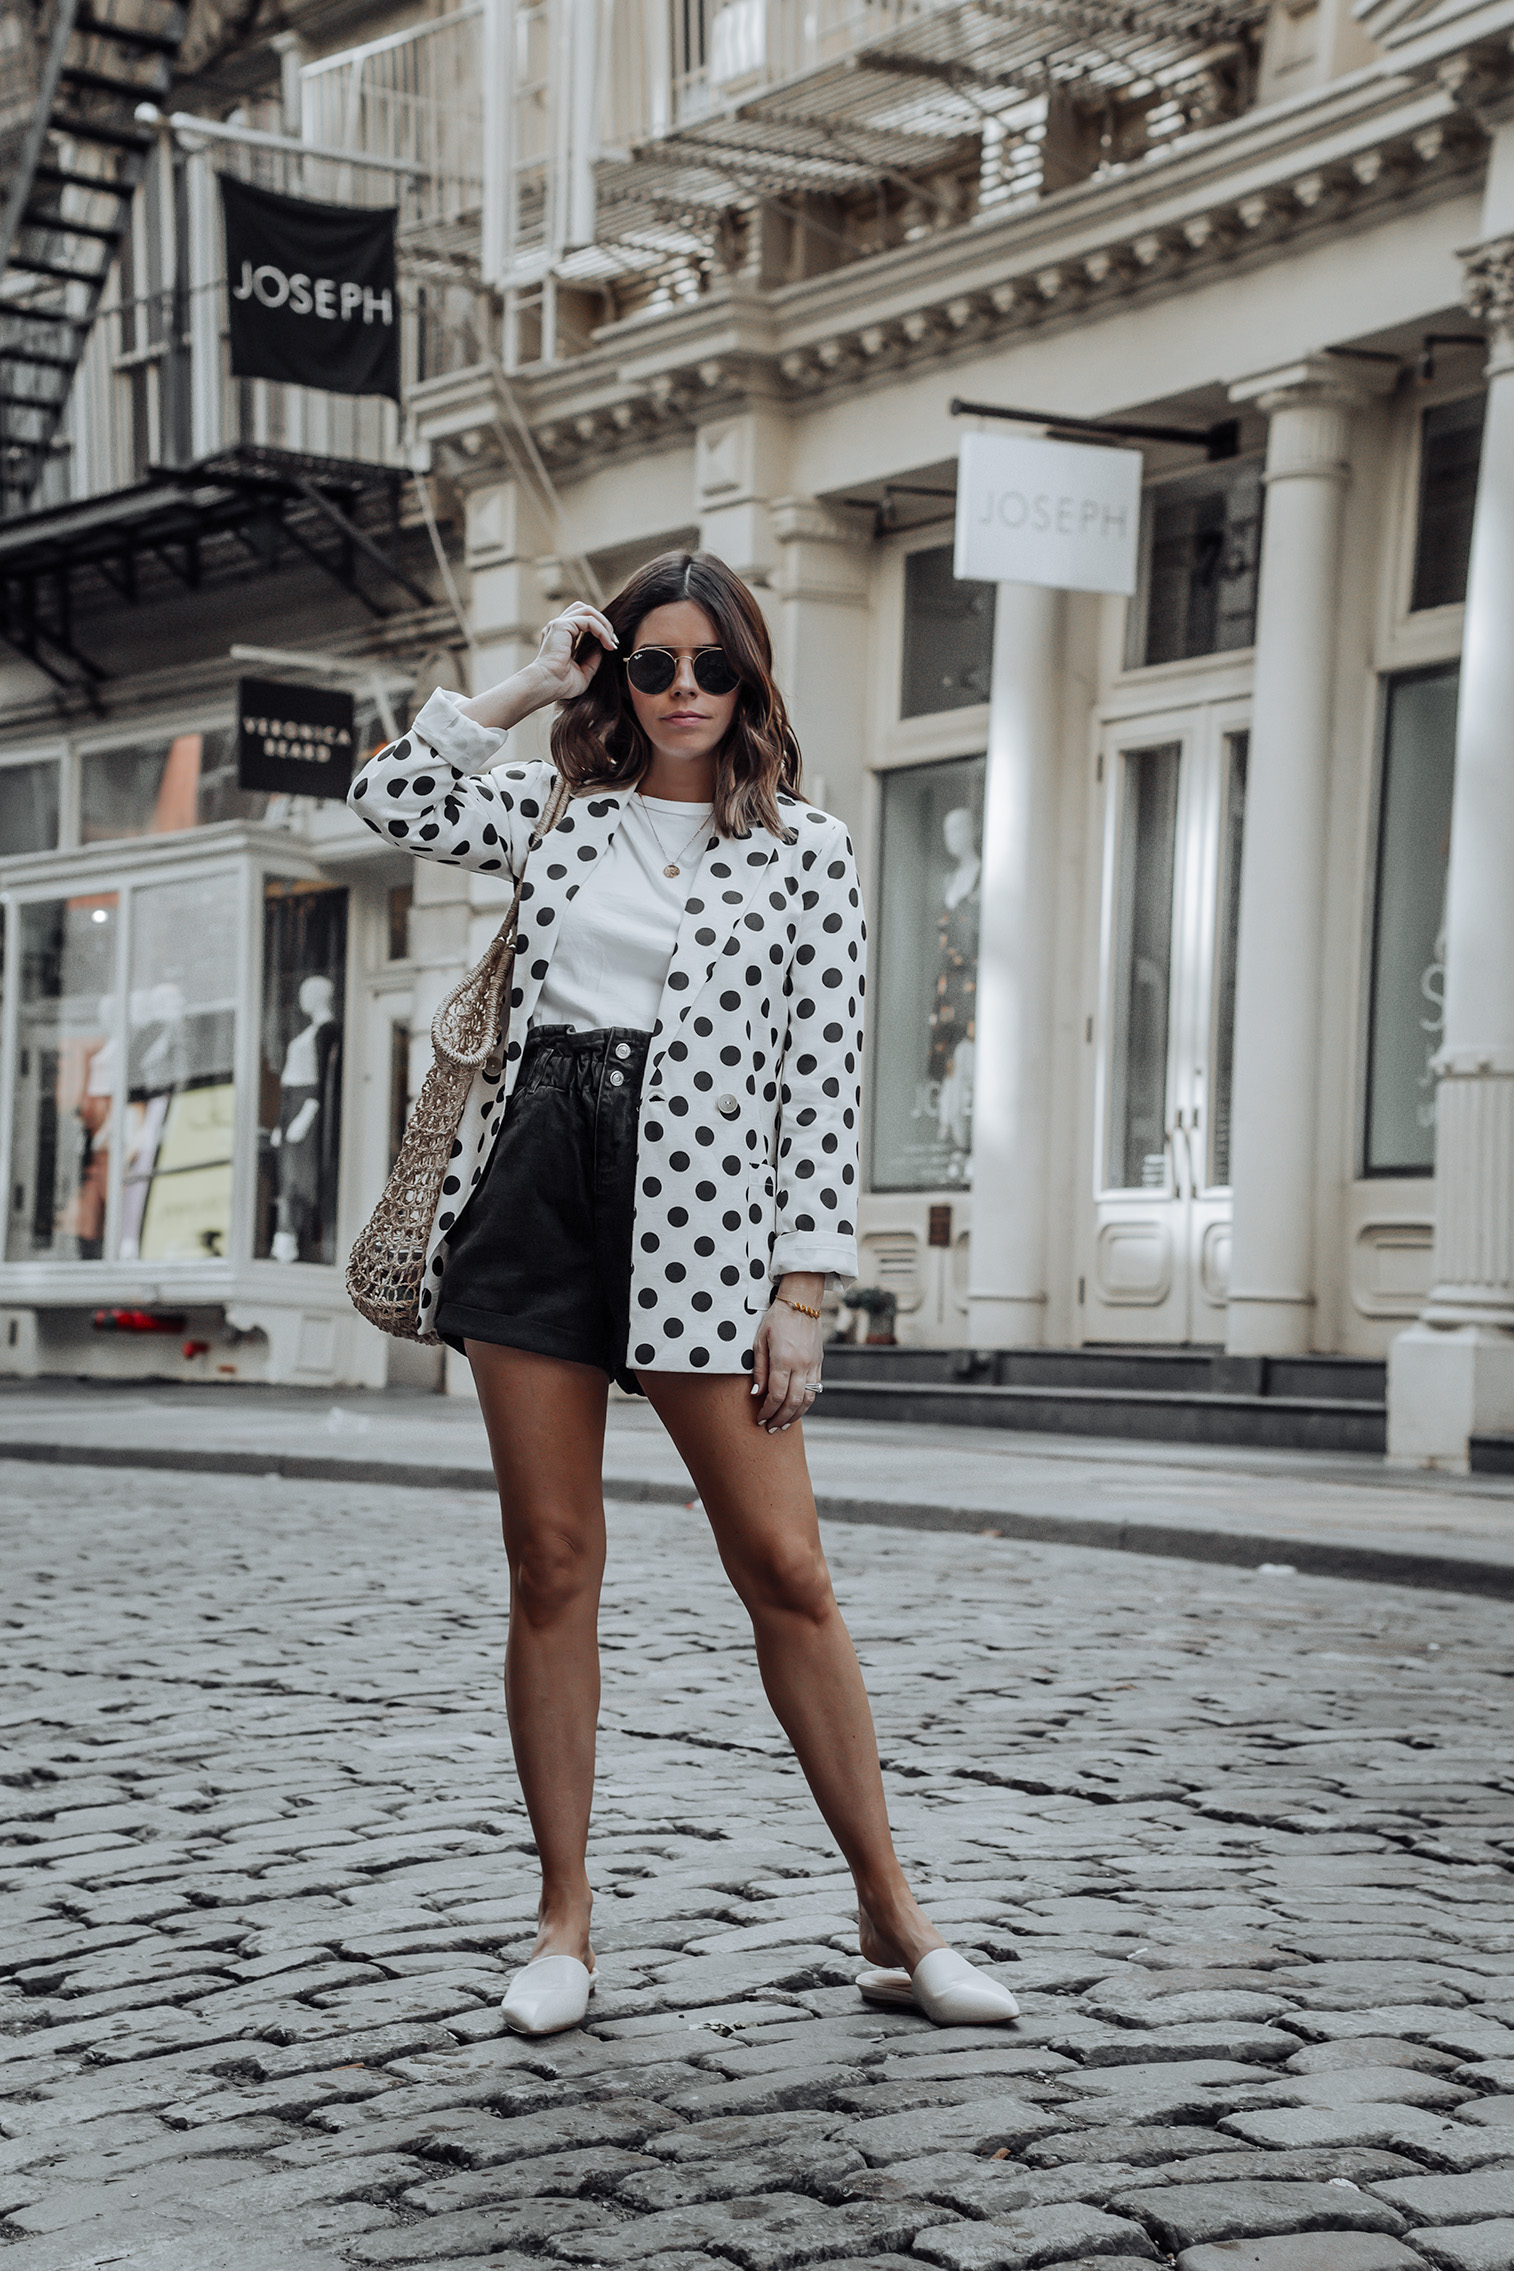 Linen spotted blazer   Click to shop the look: Black Paper Bag Shorts (similar)  Linen Spotted Jacket   Straw Tote bag (similar)   #liketkit #blazer #streetstyle #ootd #strawbag #topshop #casualfashion #nycblogger